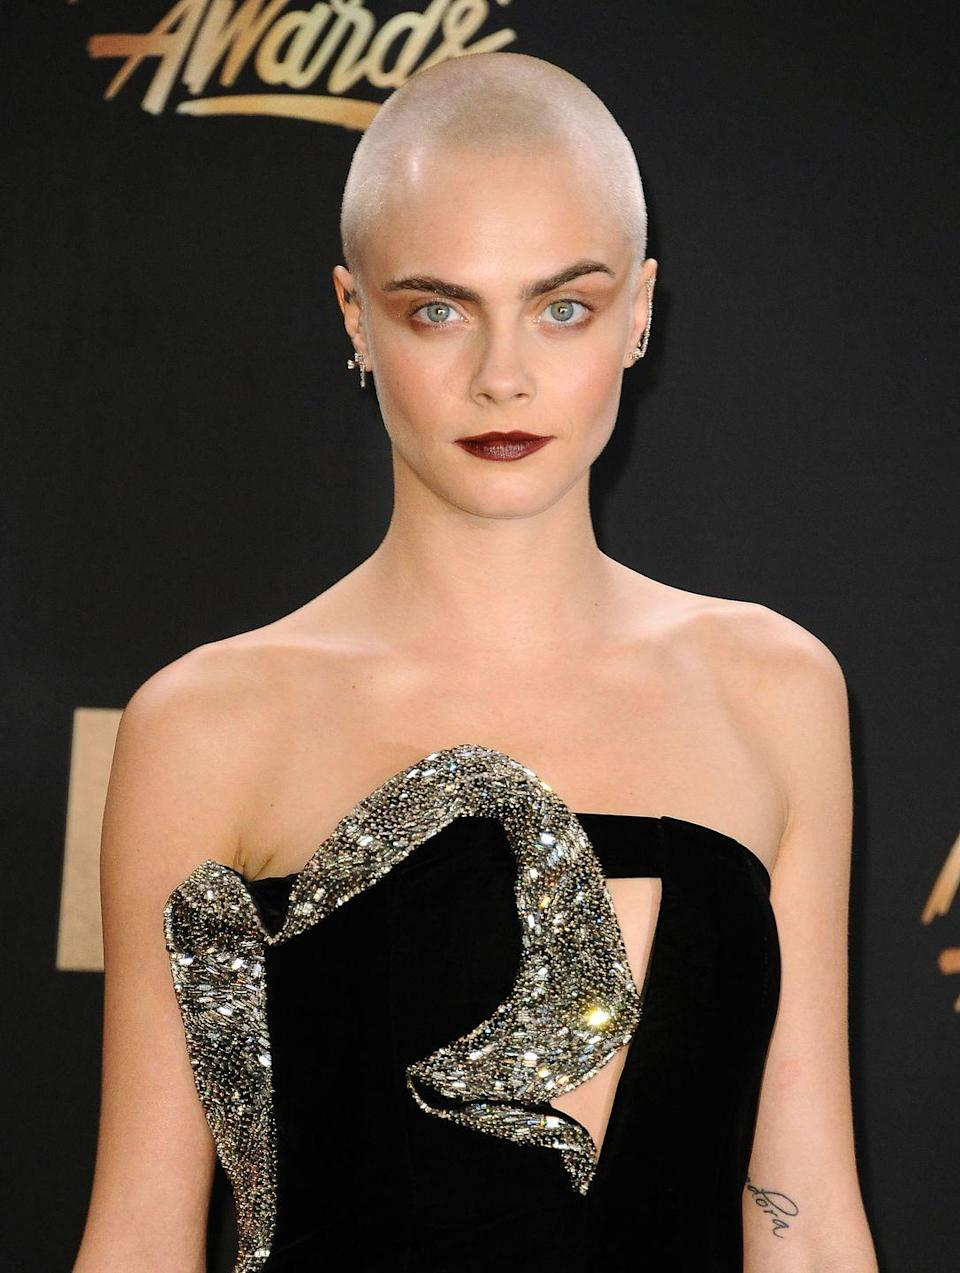 """<p>Cara Delevingne proved she was committed to her role in <em>Life in a Year</em> when she debuted a shiny head in 2017. The model/actress would keep her hair <a href=""""https://www.harpersbazaar.com/uk/beauty/hair/news/a42775/cara-delevingne-explains-why-she-really-cut-off-her-hair/"""" rel=""""nofollow noopener"""" target=""""_blank"""" data-ylk=""""slk:closely cropped"""" class=""""link rapid-noclick-resp"""">closely cropped</a> for a short period after the filming the drama, in which she played a woman with cancer left with one year to live. </p>"""